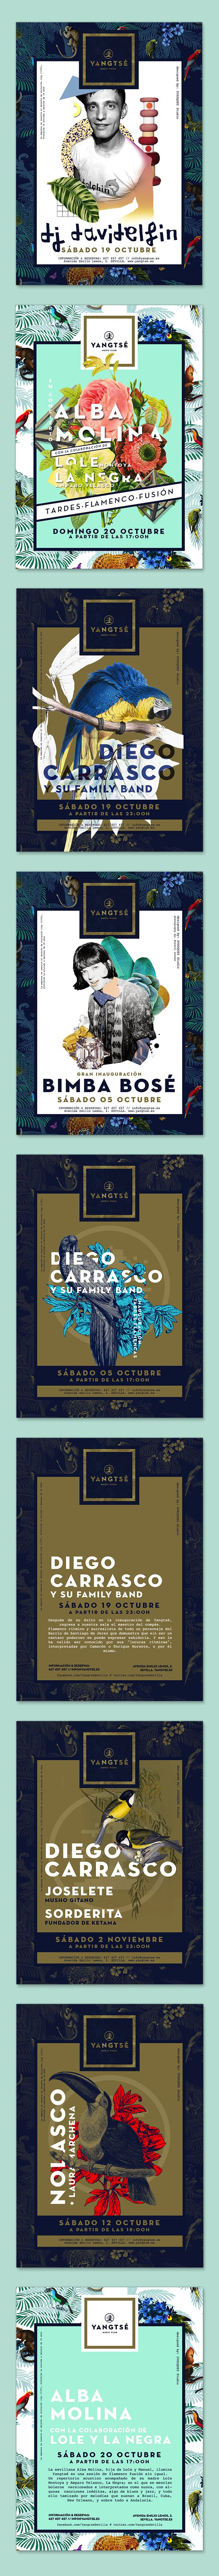 We love the graphic design details and vibrant colors in these Yangtsé Music Room flyers! #webdesign #graphicdesign #illustration